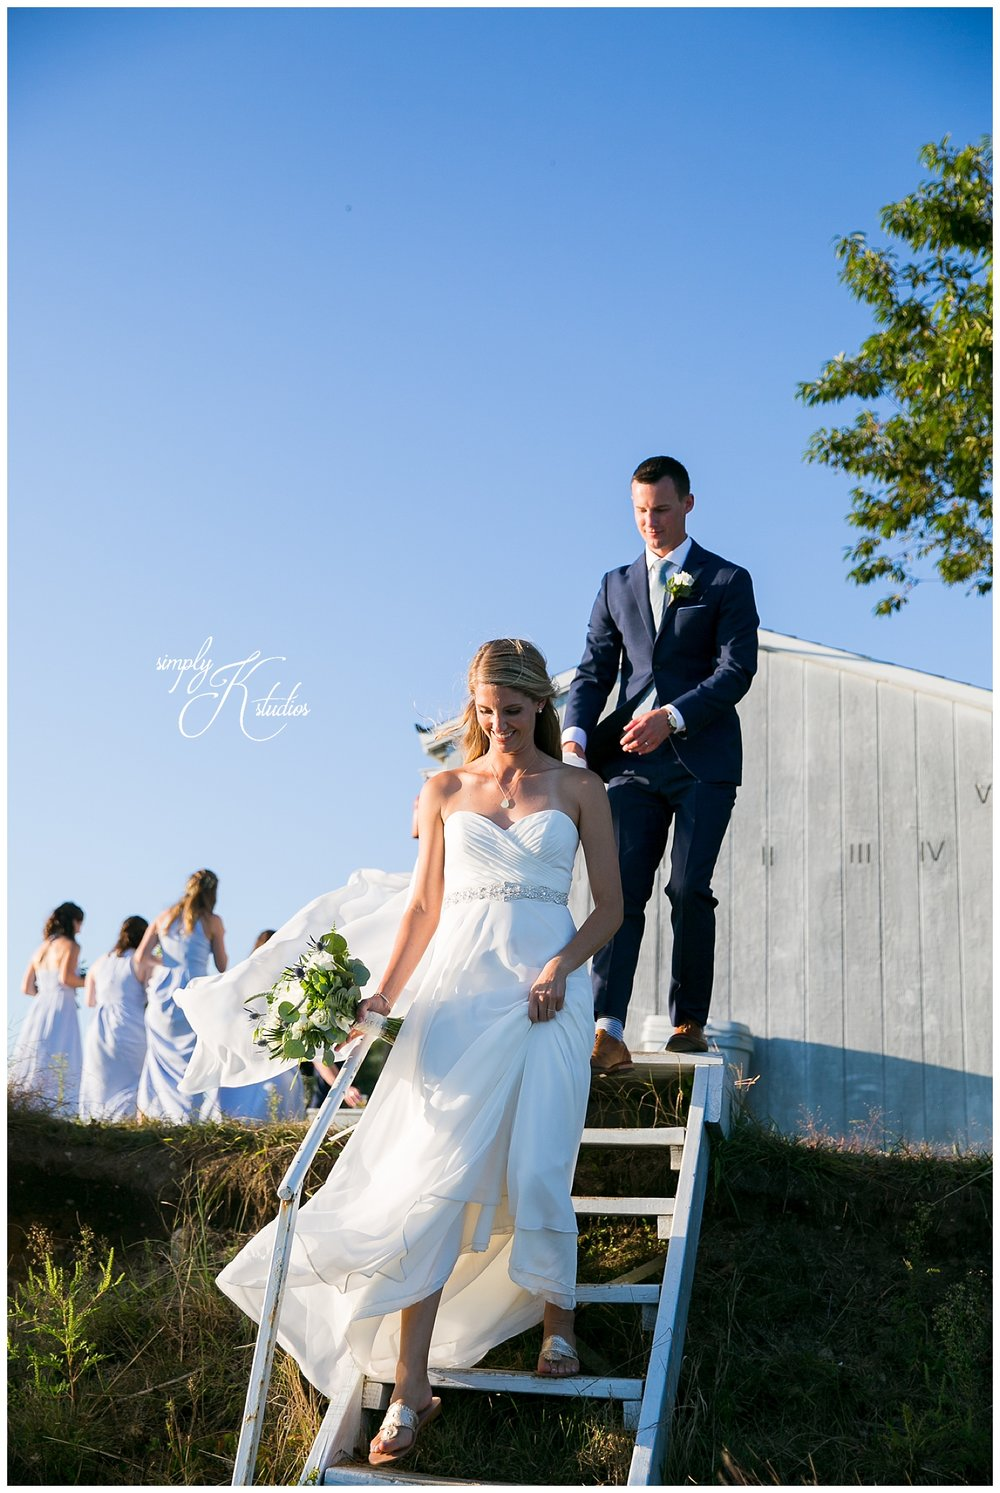 CT Shoreline Wedding.jpg